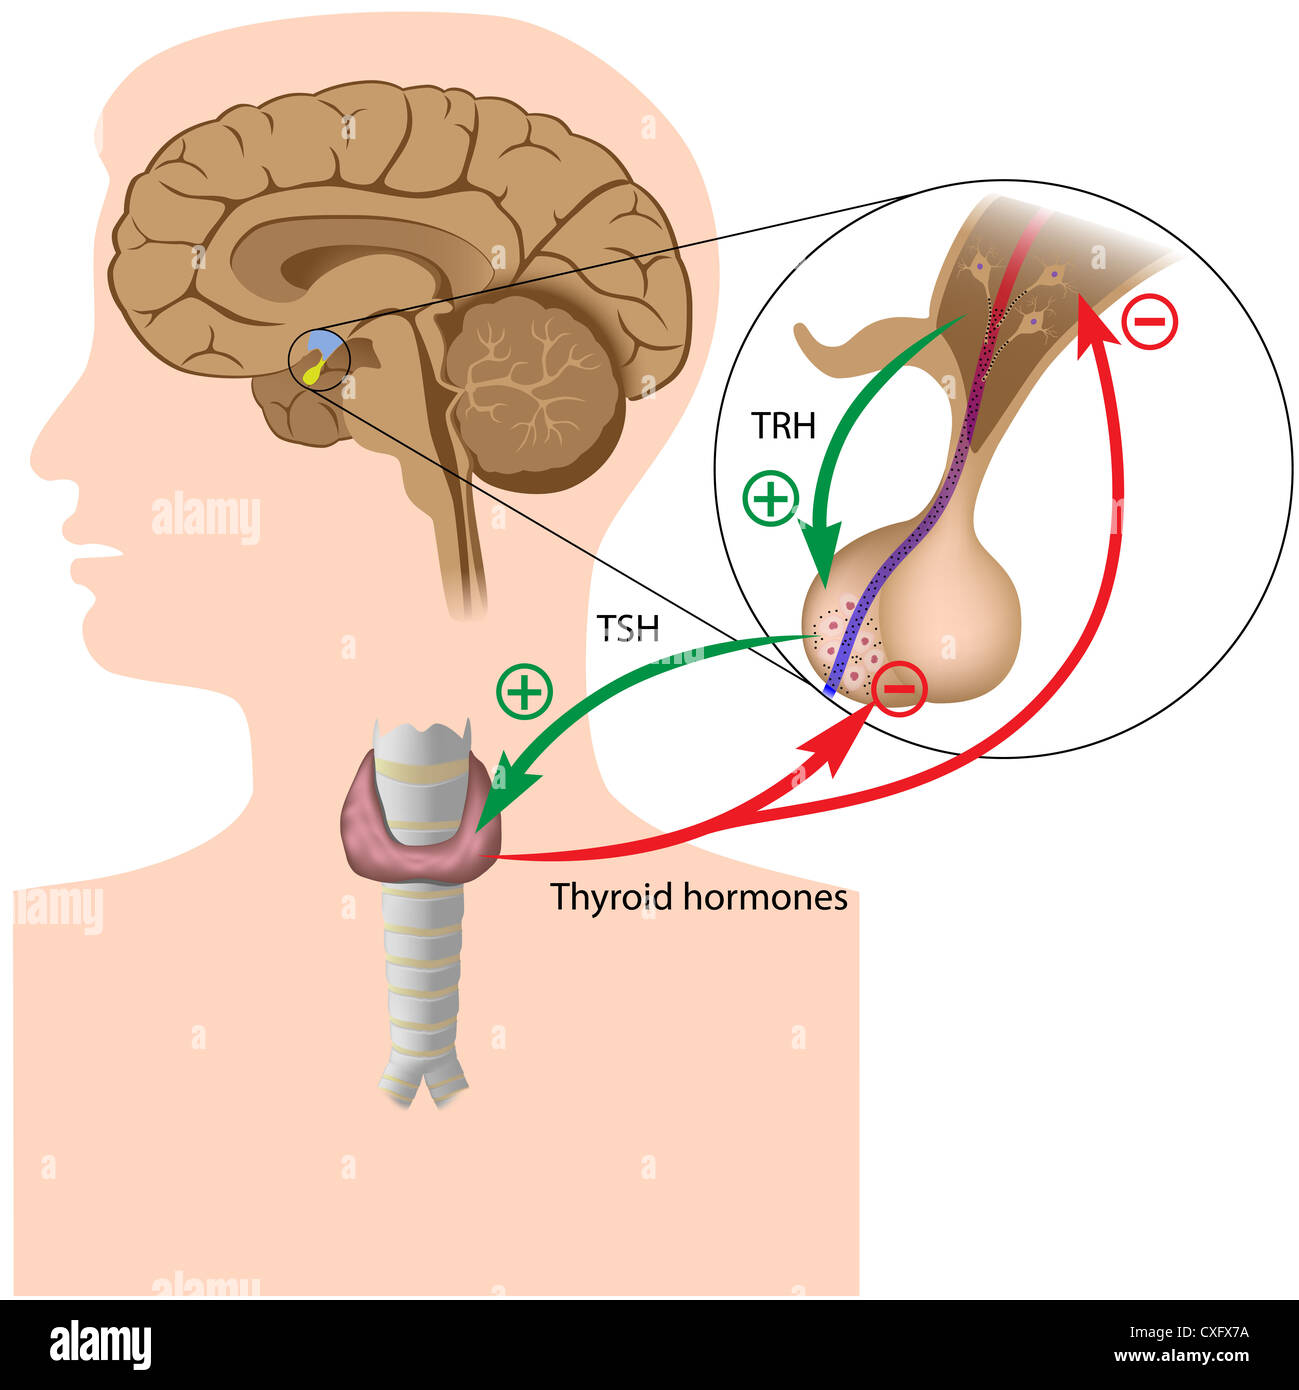 Negative Feedback In The Pituitary Thyroid Axis Stock Photo